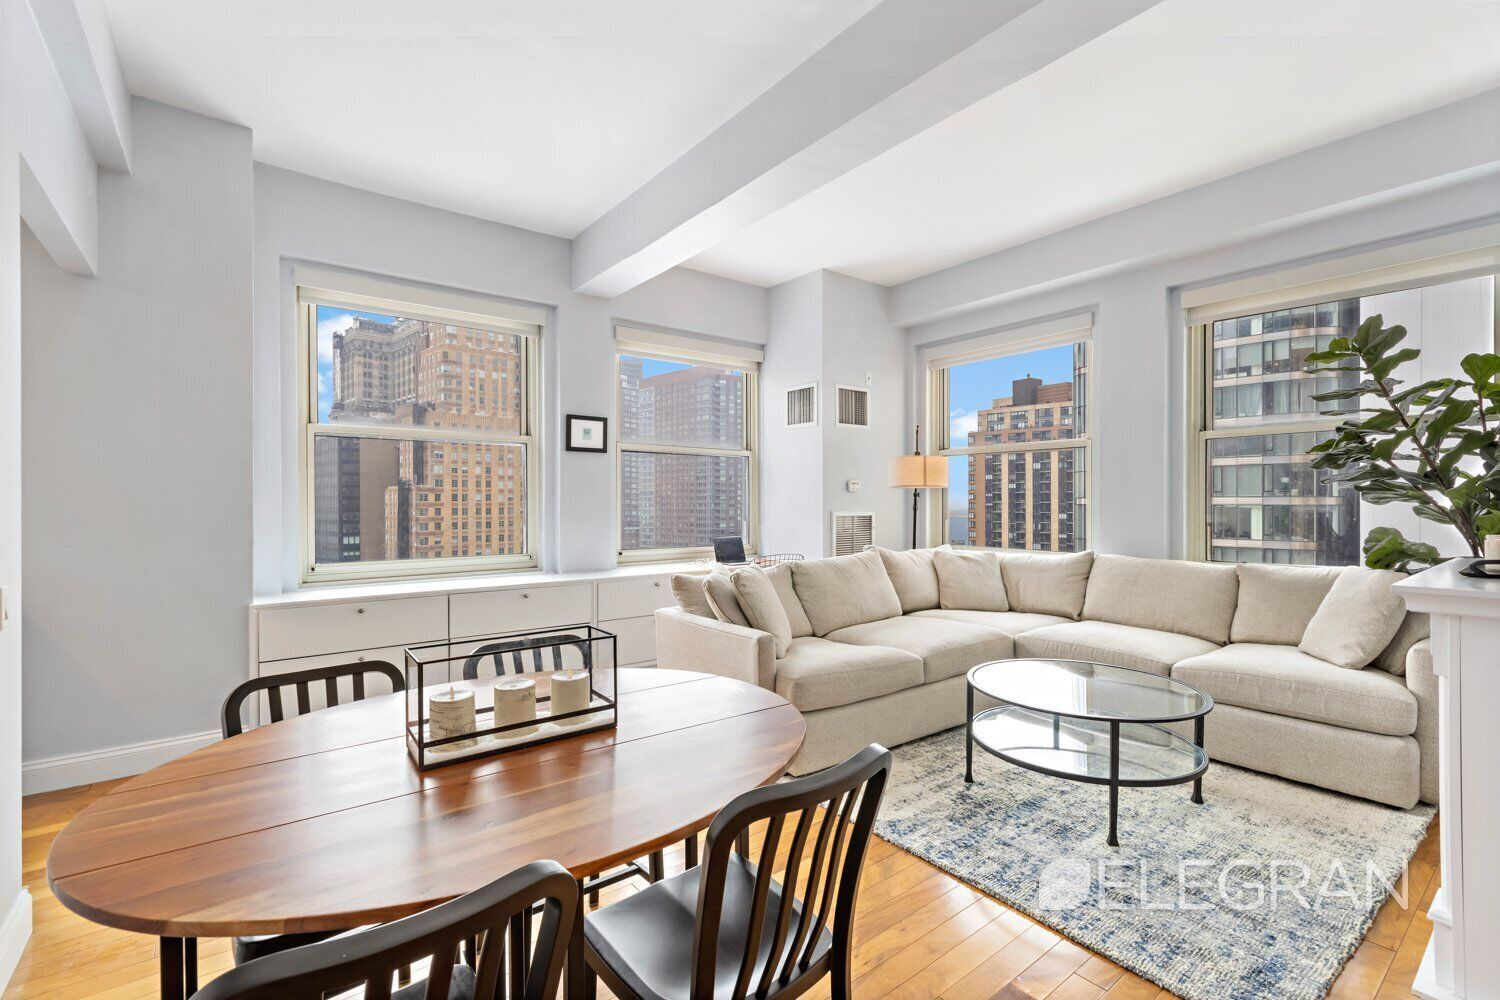 Apartment for sale at 88 Greenwich Street, Apt 1603